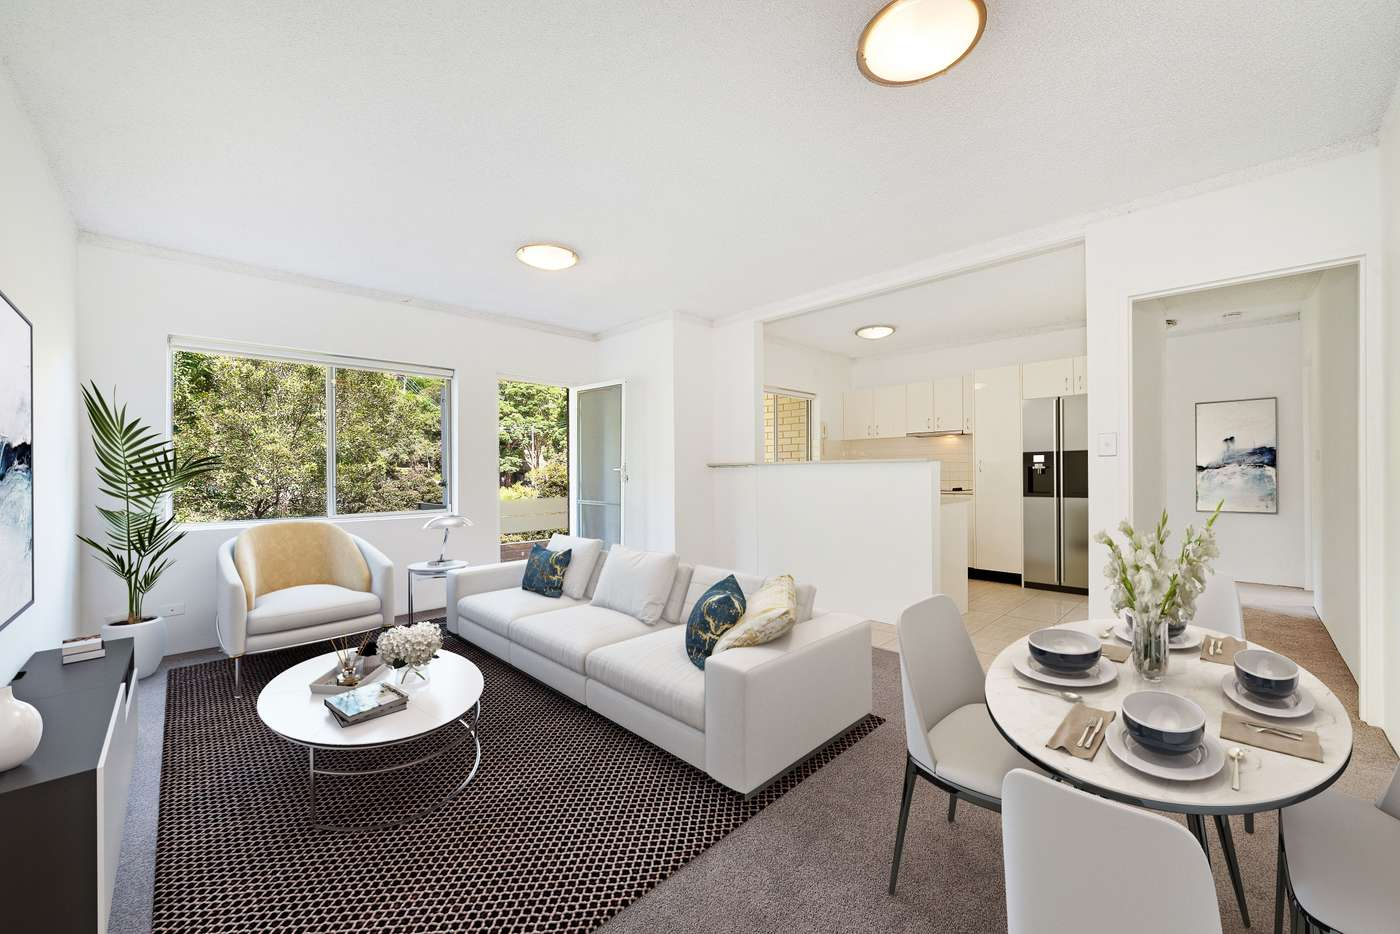 Main view of Homely apartment listing, 6/30 Eaton Street, Neutral Bay NSW 2089